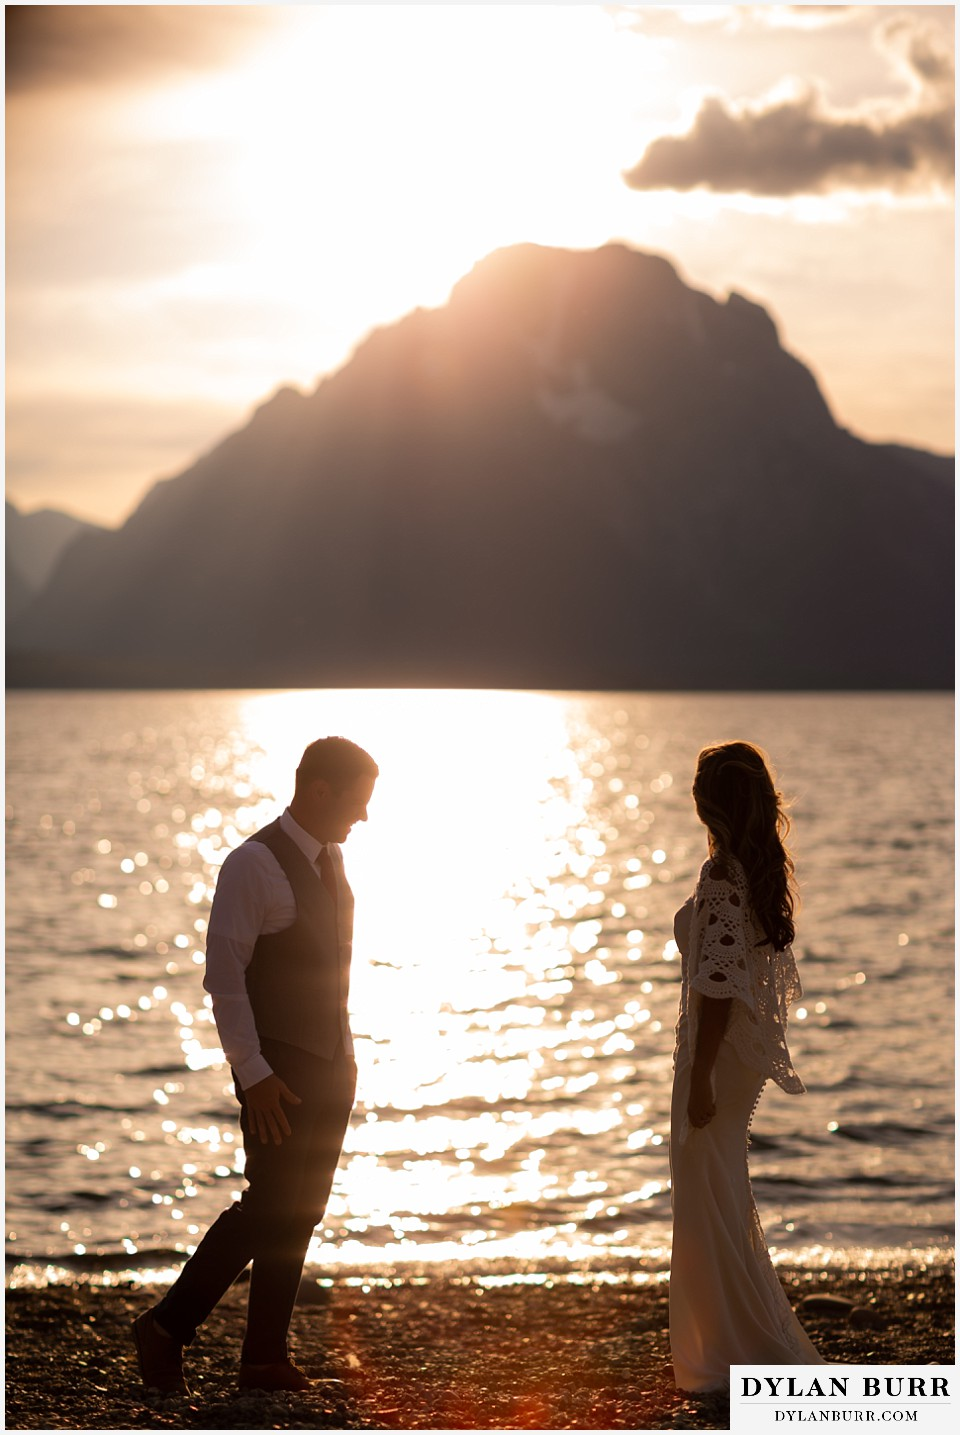 jackson lake lodge wedding grand tetons wyoming bride and groom walking in sunlight by the lake and mt moran